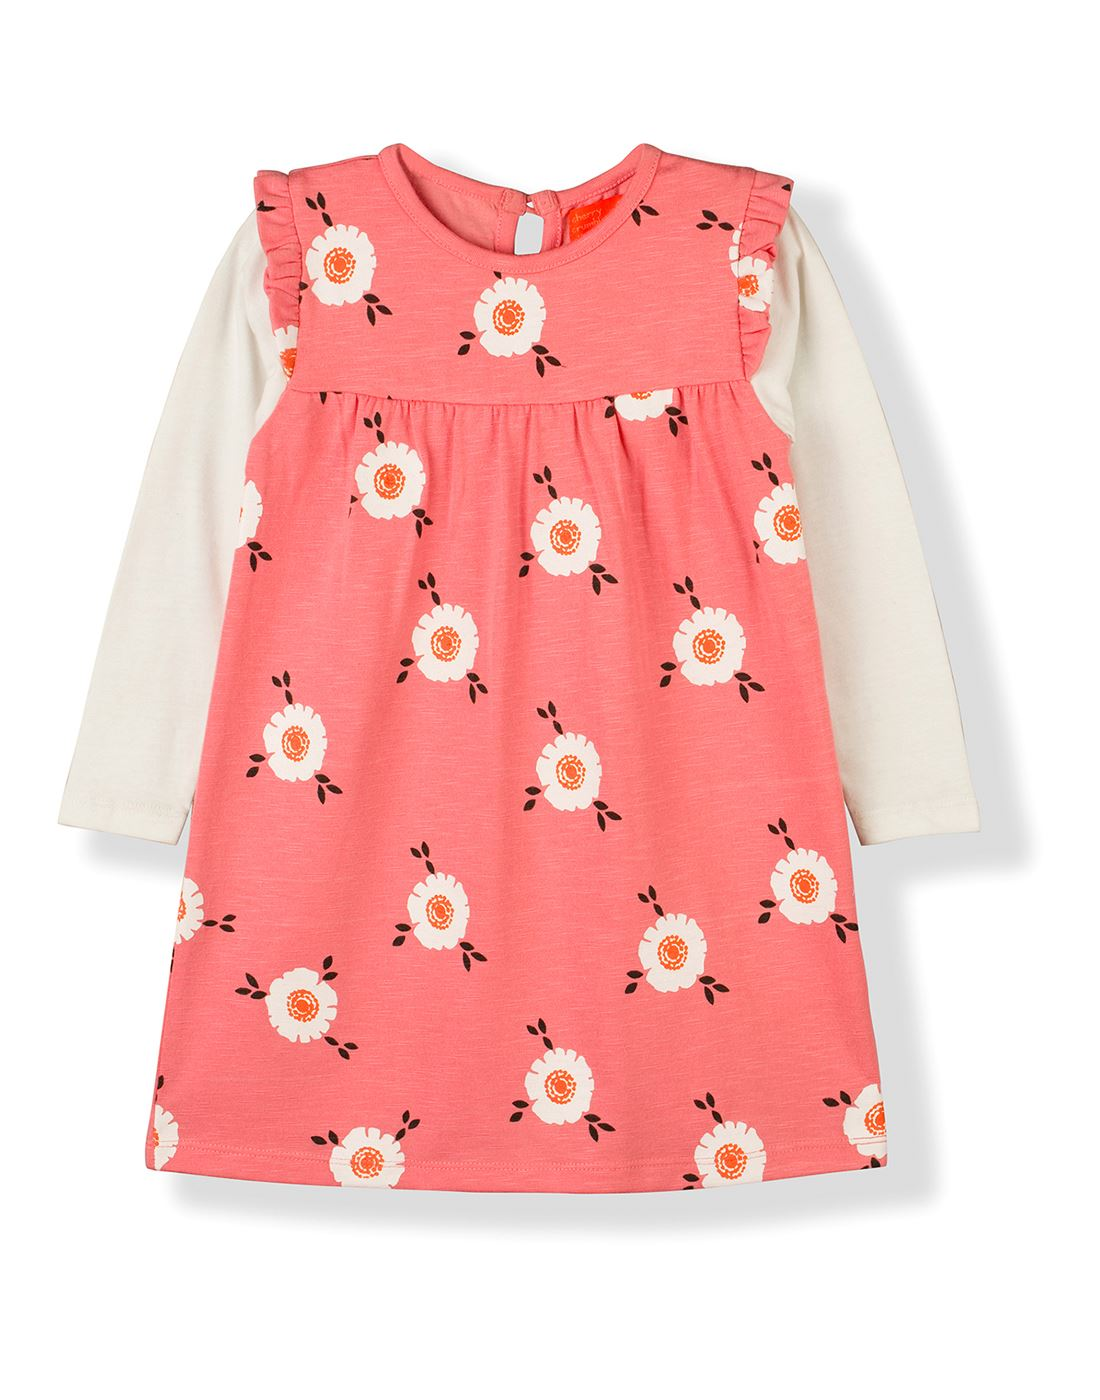 Cherry Crumble California Casual Wear Printed Girls Dresses